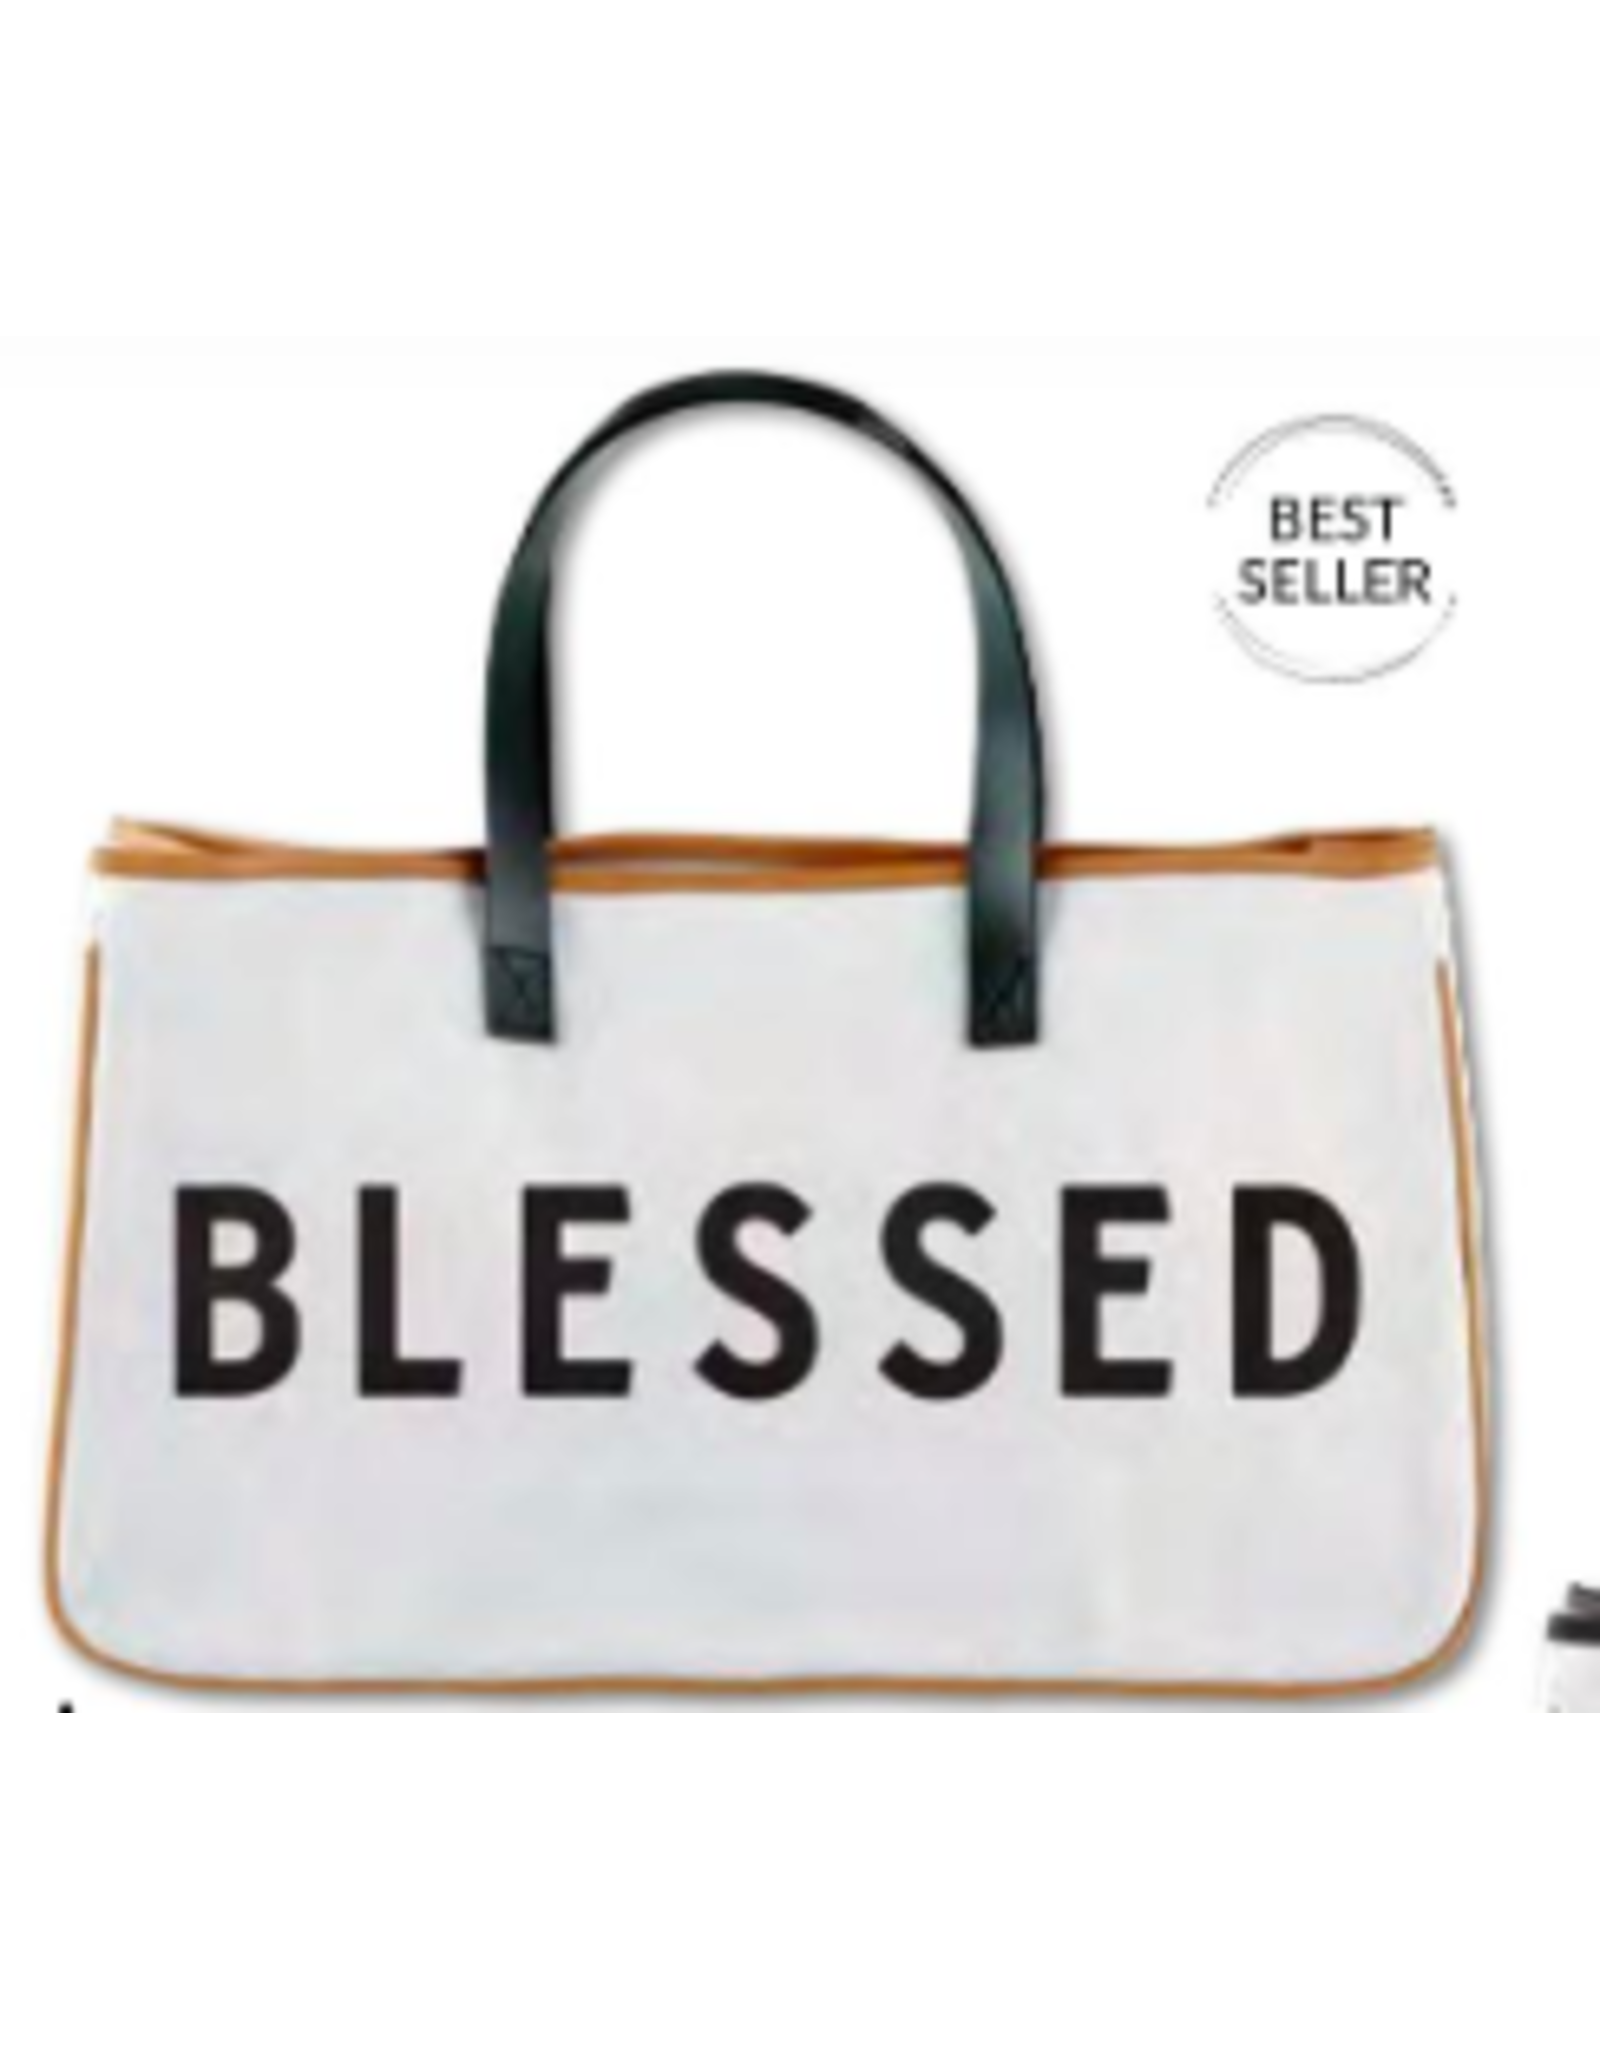 GIB Carson Companies Blessed Canvas Tote